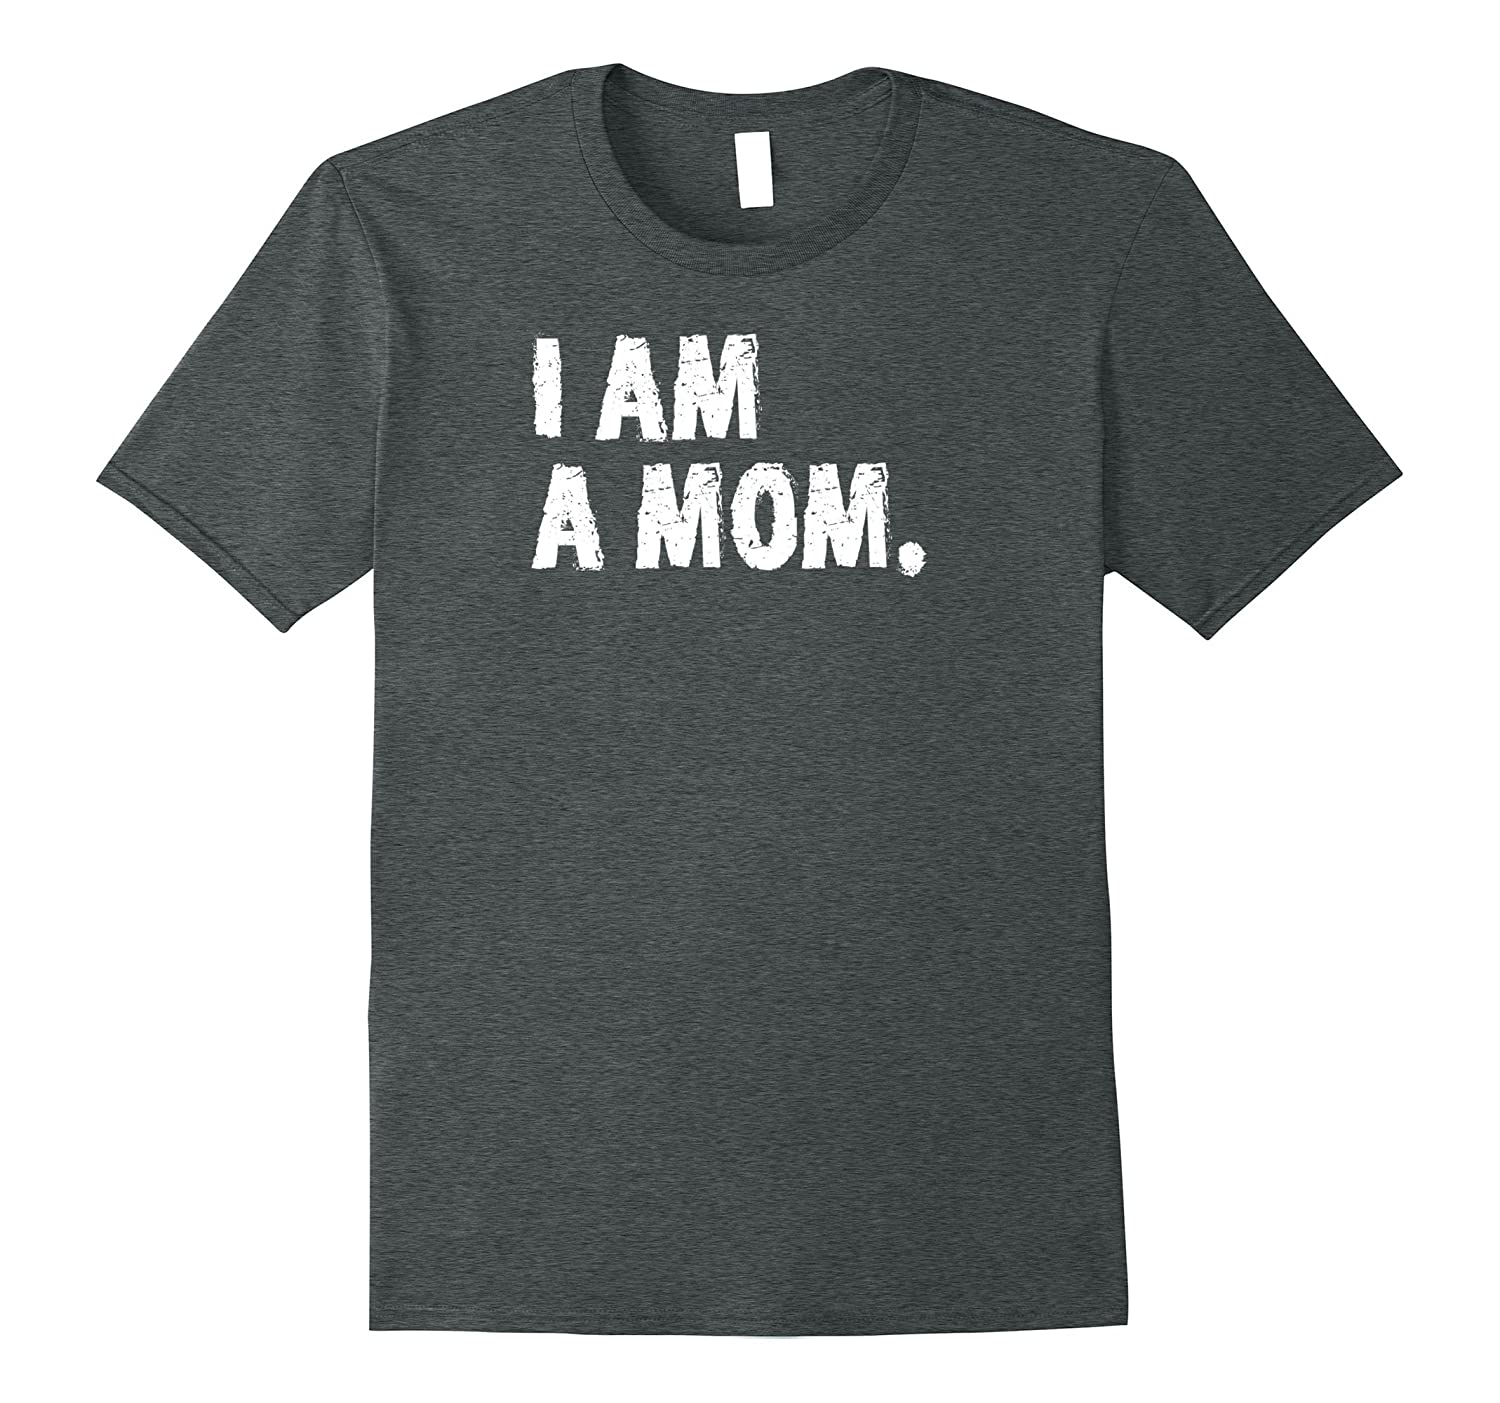 I am Mom 2017 National Gun Violence Awareness Day T-Shirt-Vaci